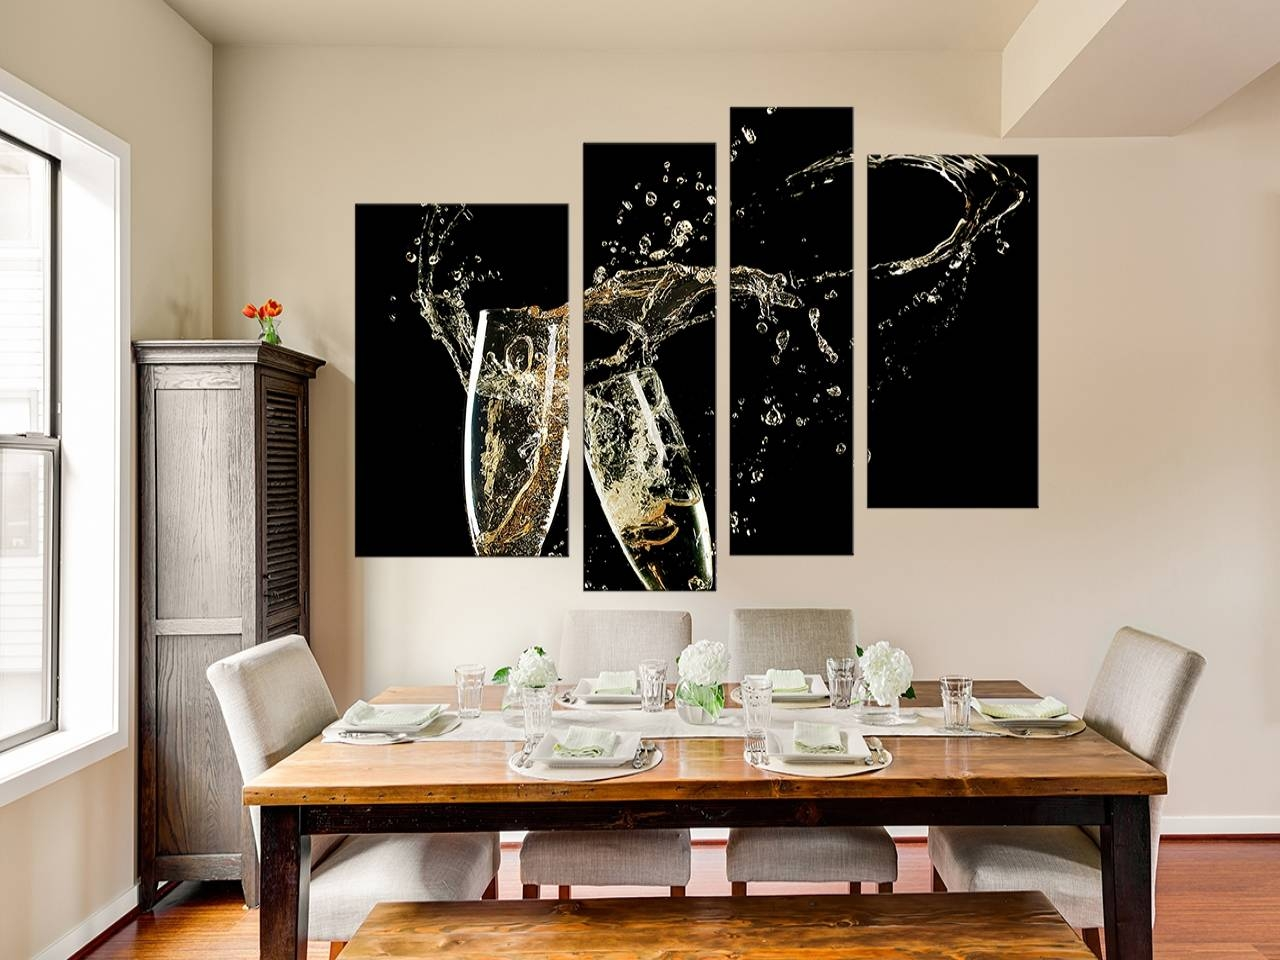 4 Piece Canvas Wall Art Black Large Canvas Champagne Multi Panel Inside Current Multiple Piece Canvas Wall Art (Gallery 11 of 25)